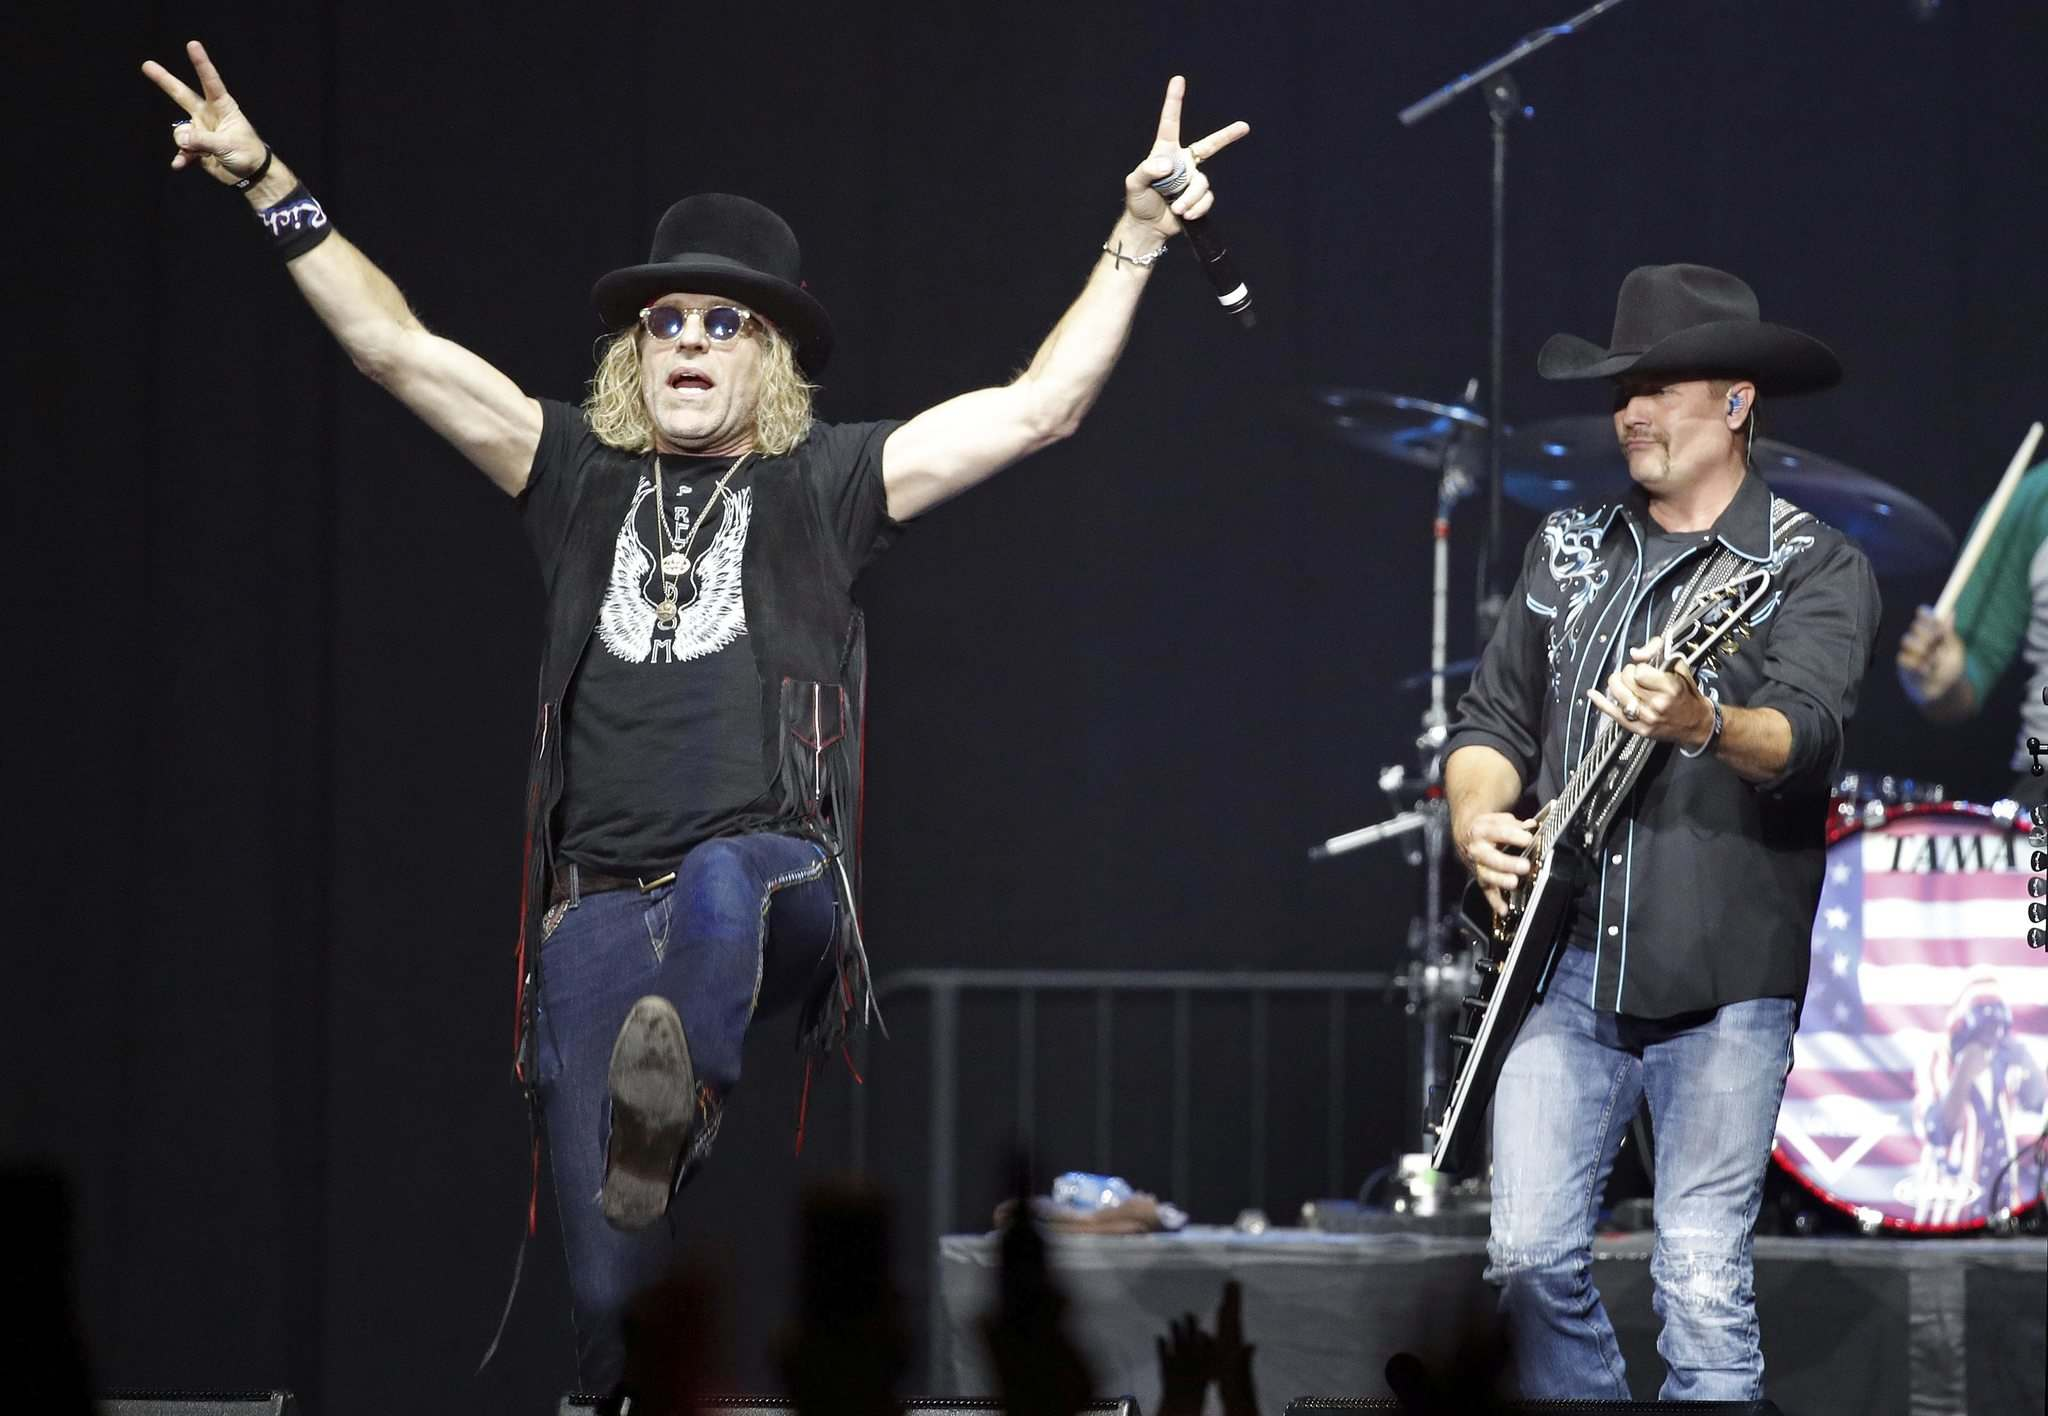 Big Kenny (left) and John Rich of Big & Rich play Saturday's mainstage. (John Locher / The Associated Press files)